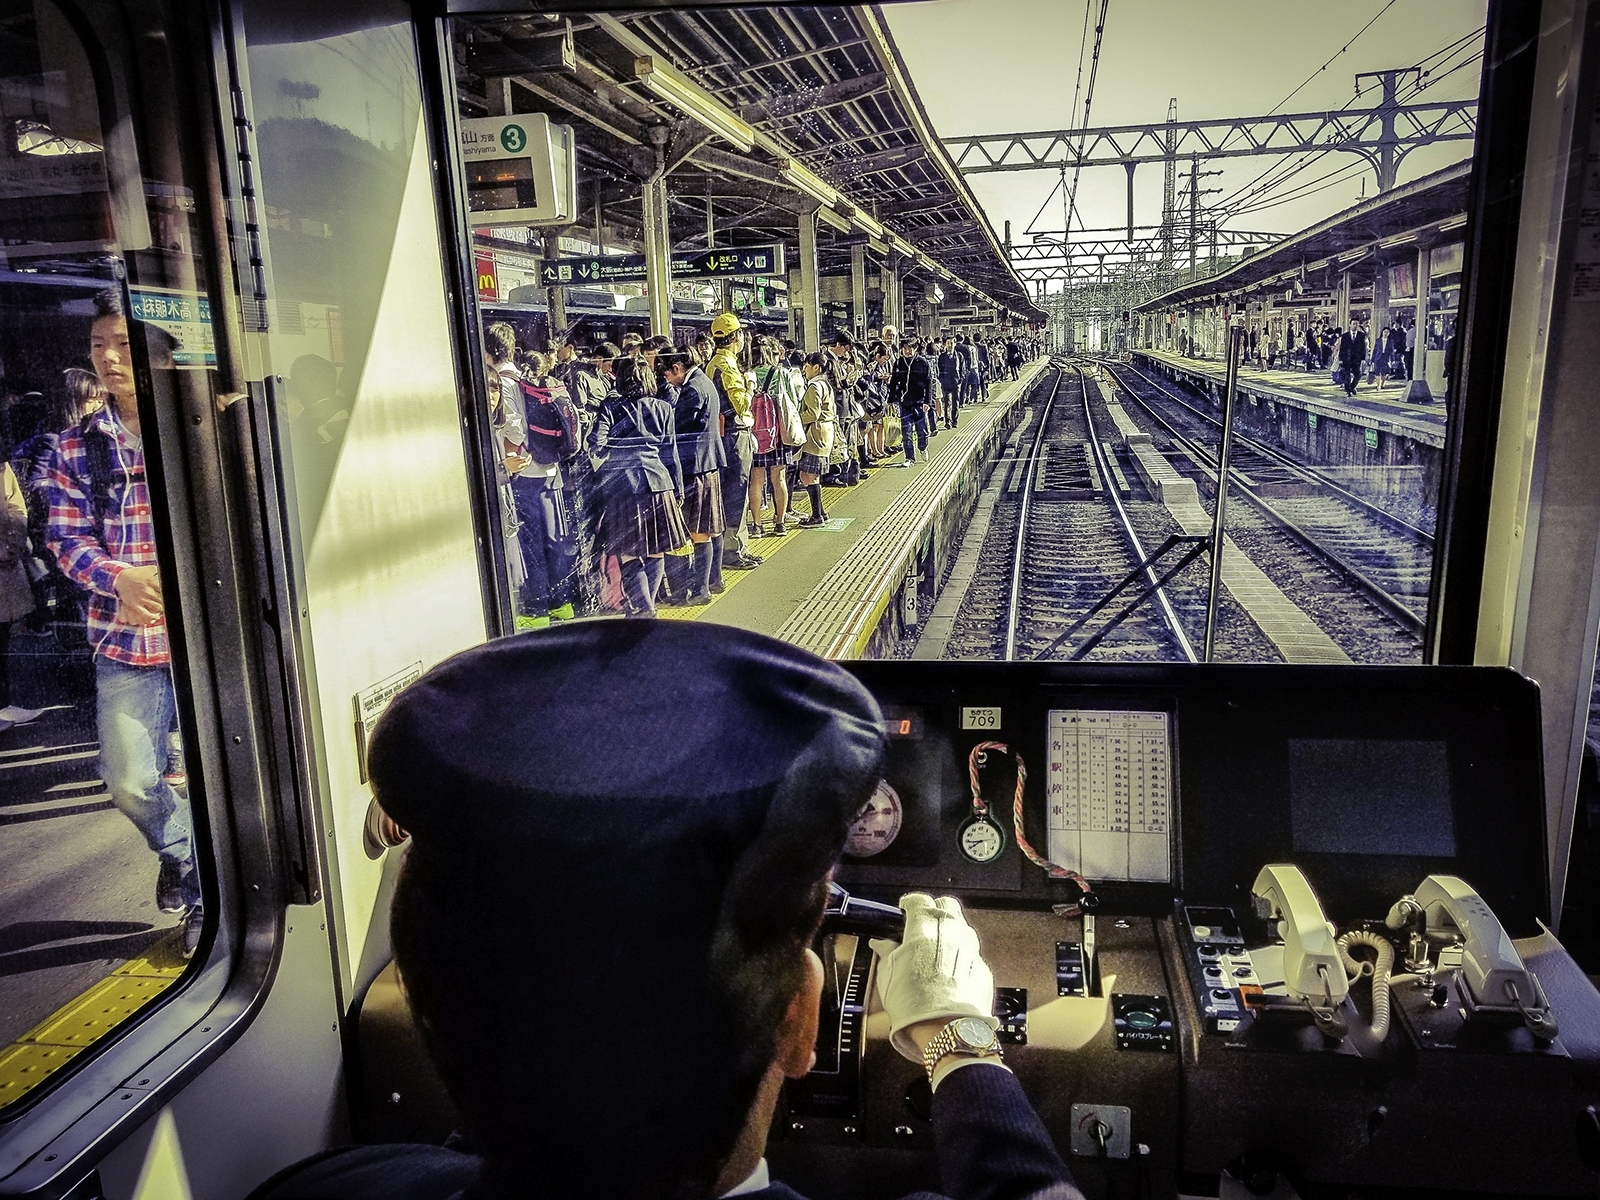 'Train Conductor's View As It Pulls Into Osaka Transfer Station' (TB Best in Show) by Alycia Sanchez - CC